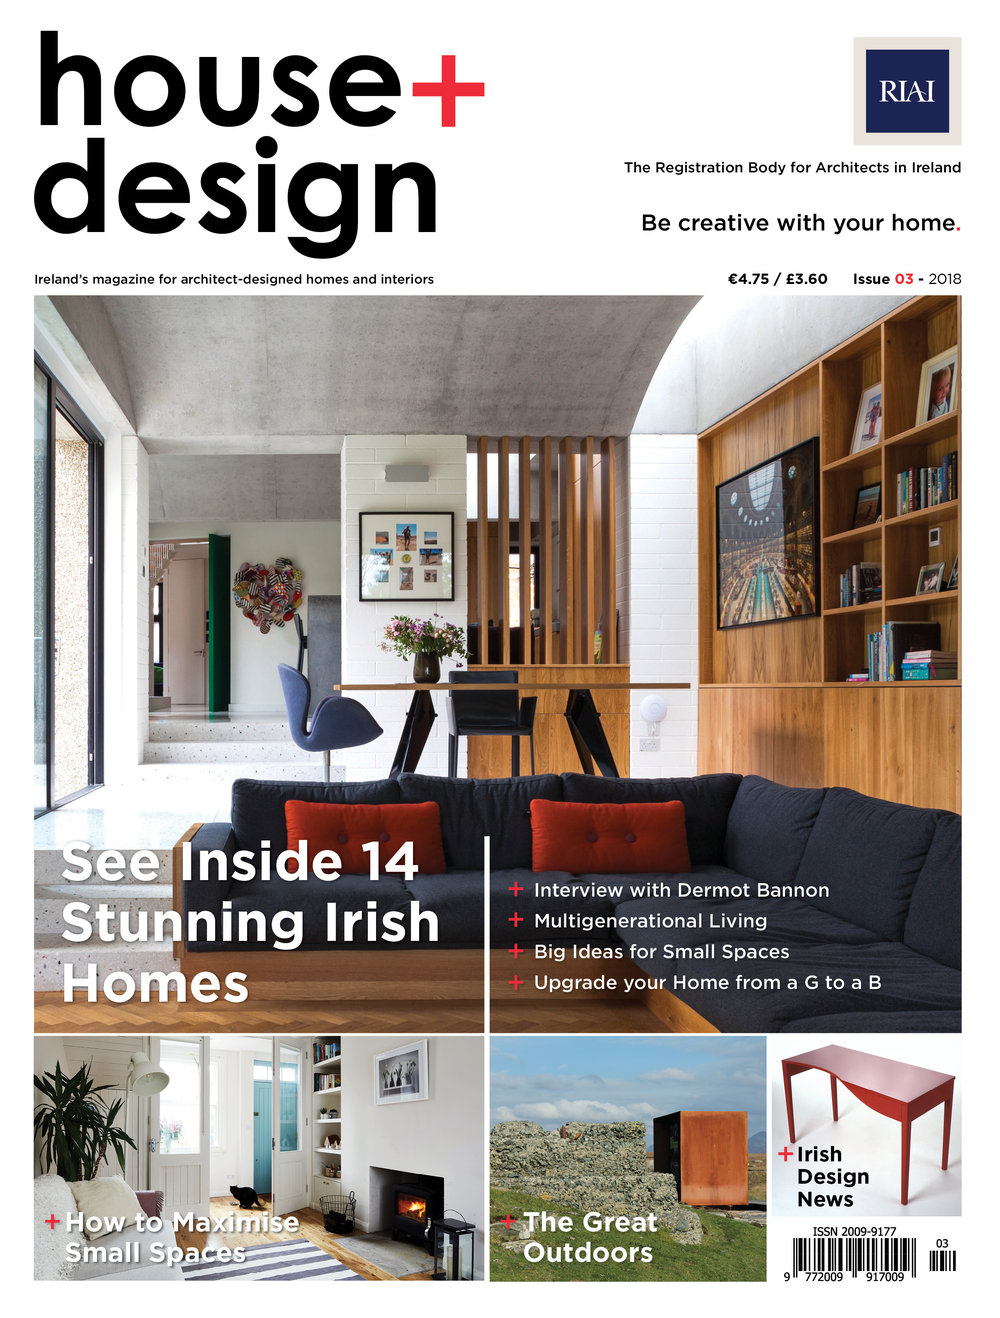 RIAI HOUSE + DESIGN_ISSUE3. RIAI HOUSE + DESIGN MAGAZINE